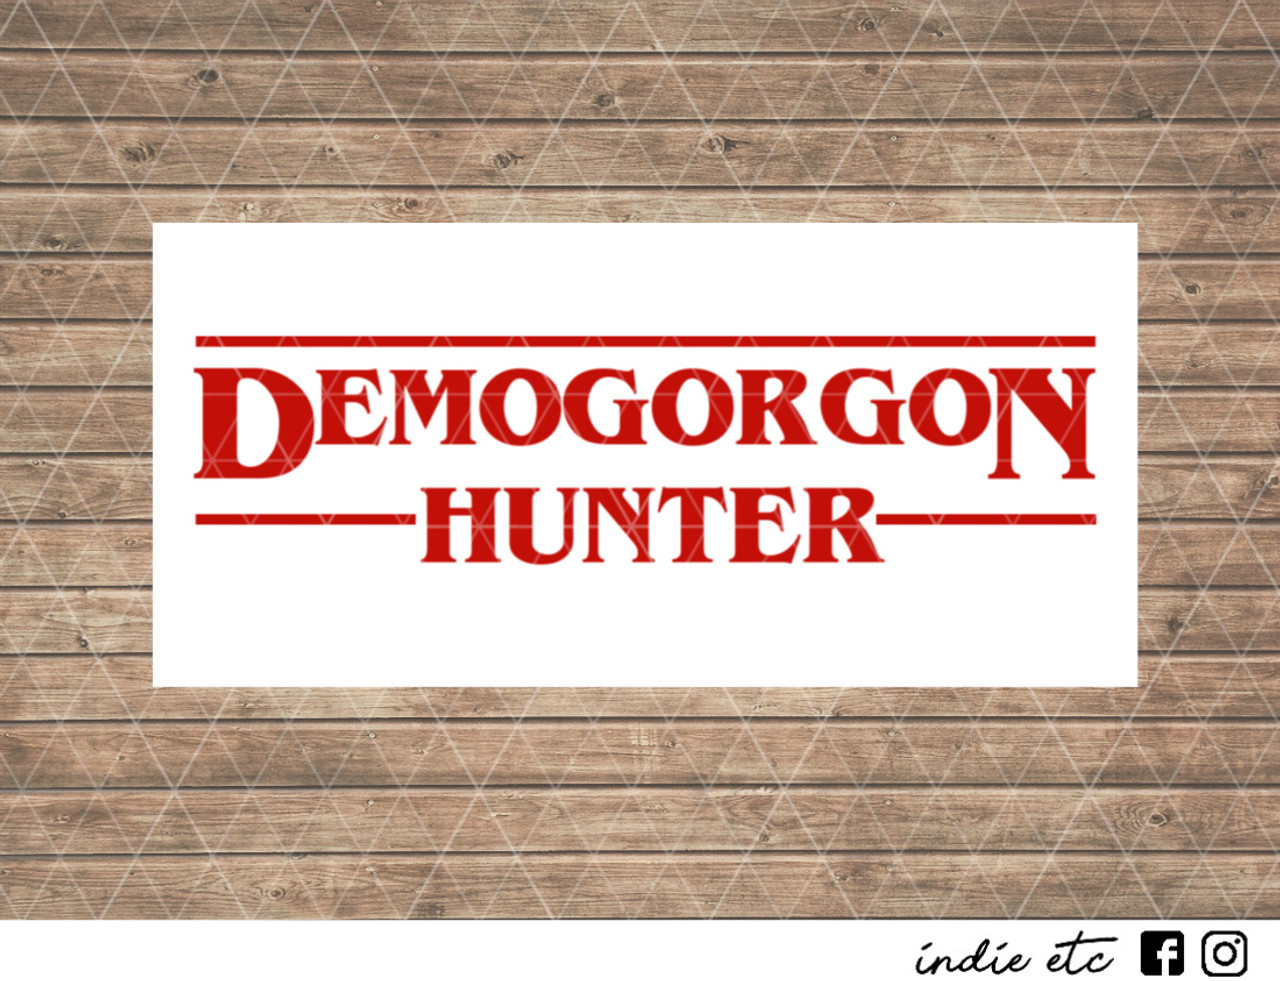 Demogorgon hunter stranger things decal choose your color or pattern and size